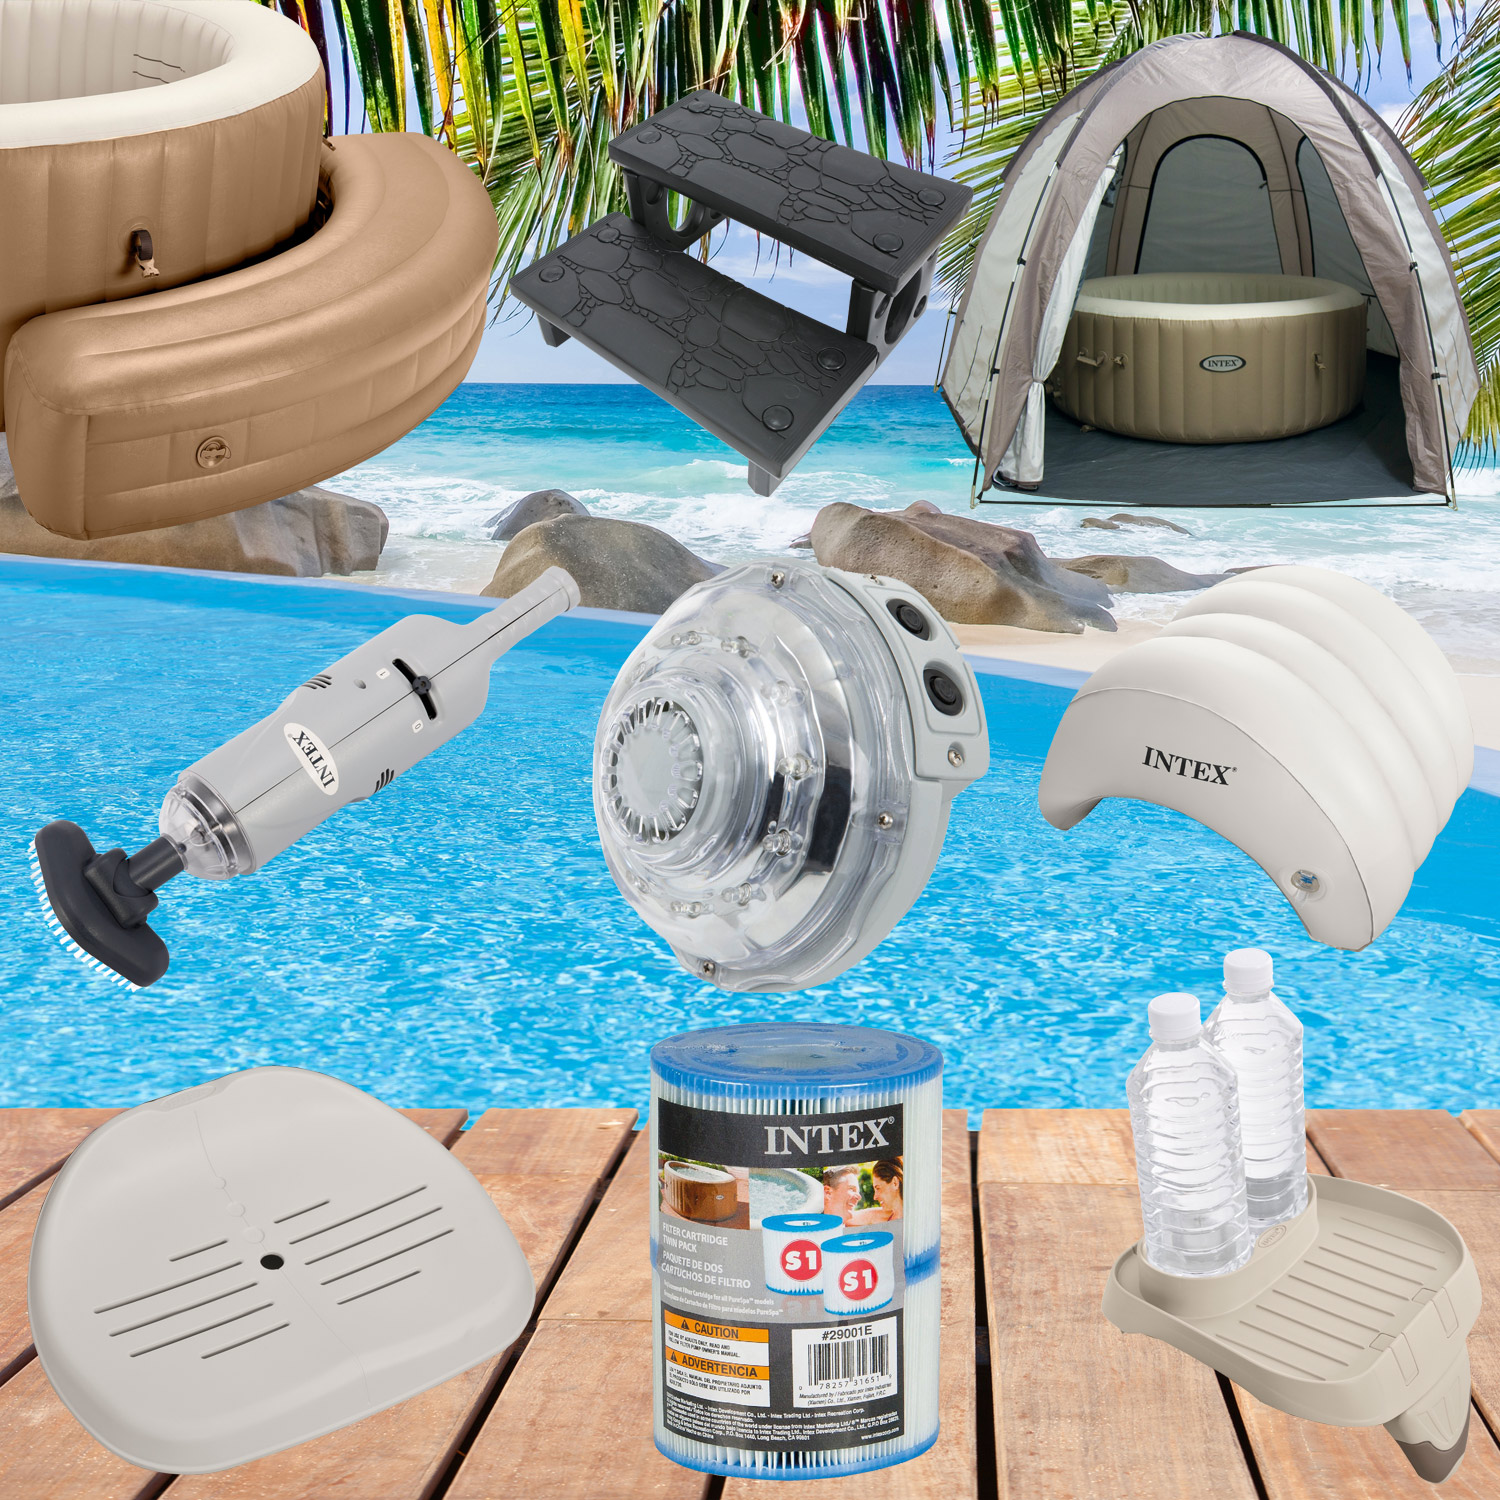 Intex Zubehor Fur Whirlpool Spa Bubble Led Treppe Sitz Filter Pool Aufblasbar Ebay